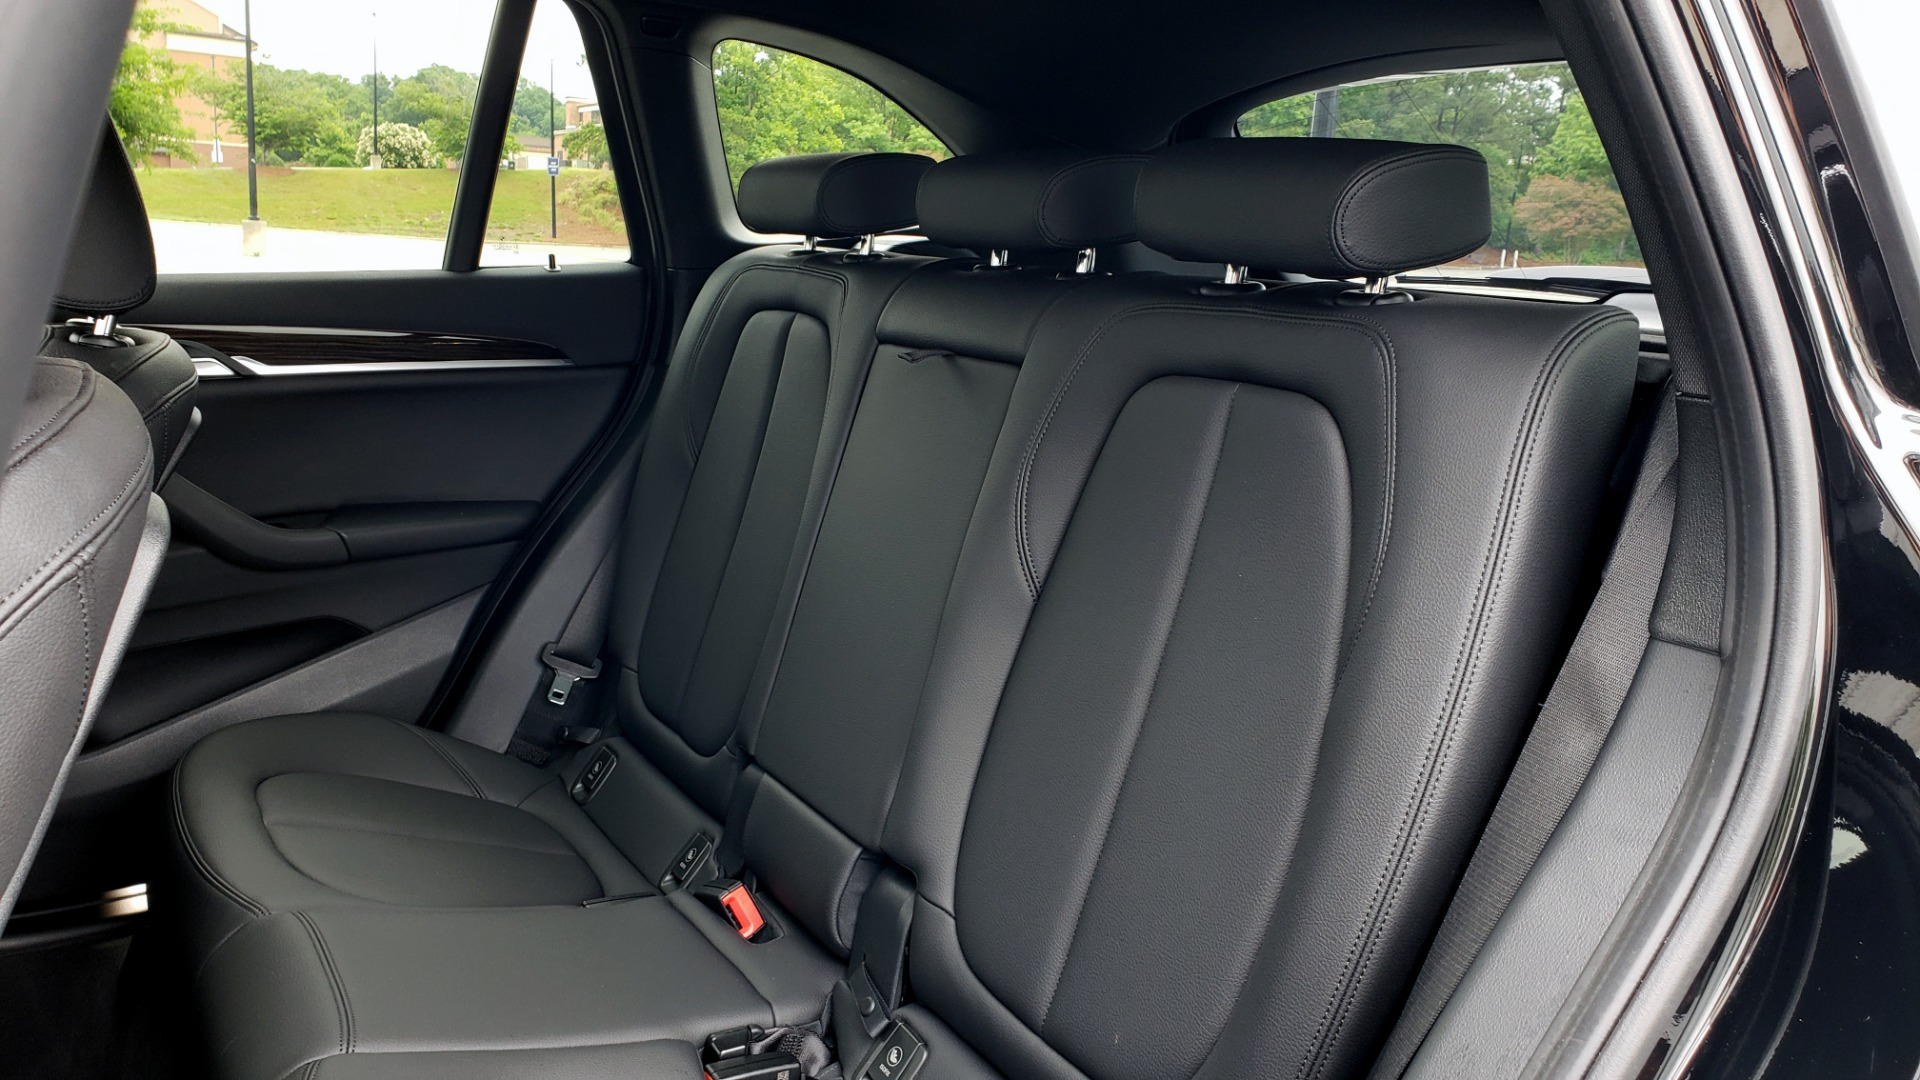 Used 2018 BMW X1 XDRIVE28I / CONV PKG / NAV / HTD STS / PANO-ROOF / REARVIEW for sale $30,995 at Formula Imports in Charlotte NC 28227 65